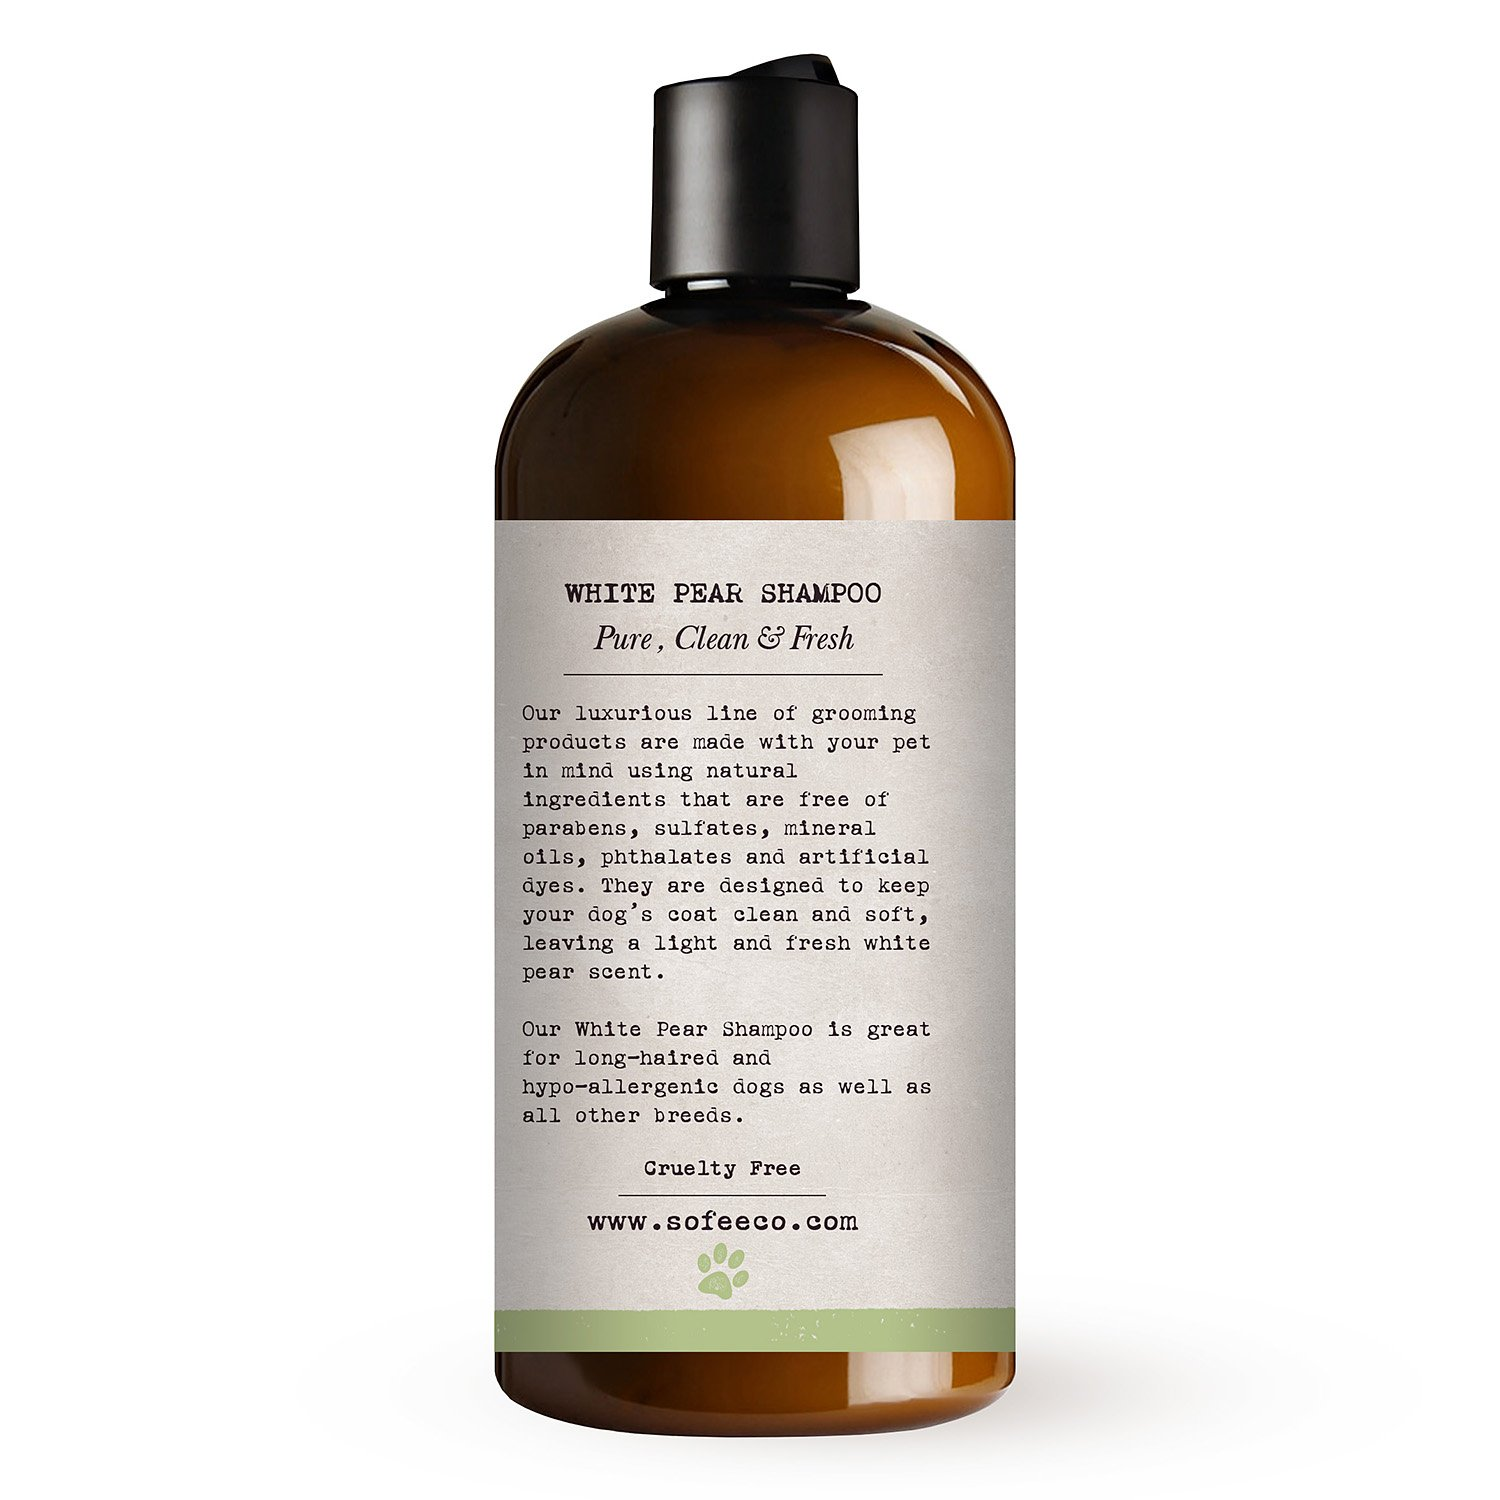 Sofee & Co. Natural Dog/Puppy Shampoo, White Pear - Clean, Moisturize, Deodorize, Detangle, Calm, Soothe, Soften, Normal, Dry, Itchy, Allergy, Sensitive Skin. Prevent Mattes. 16 oz by Sofee & Co. (Image #2)